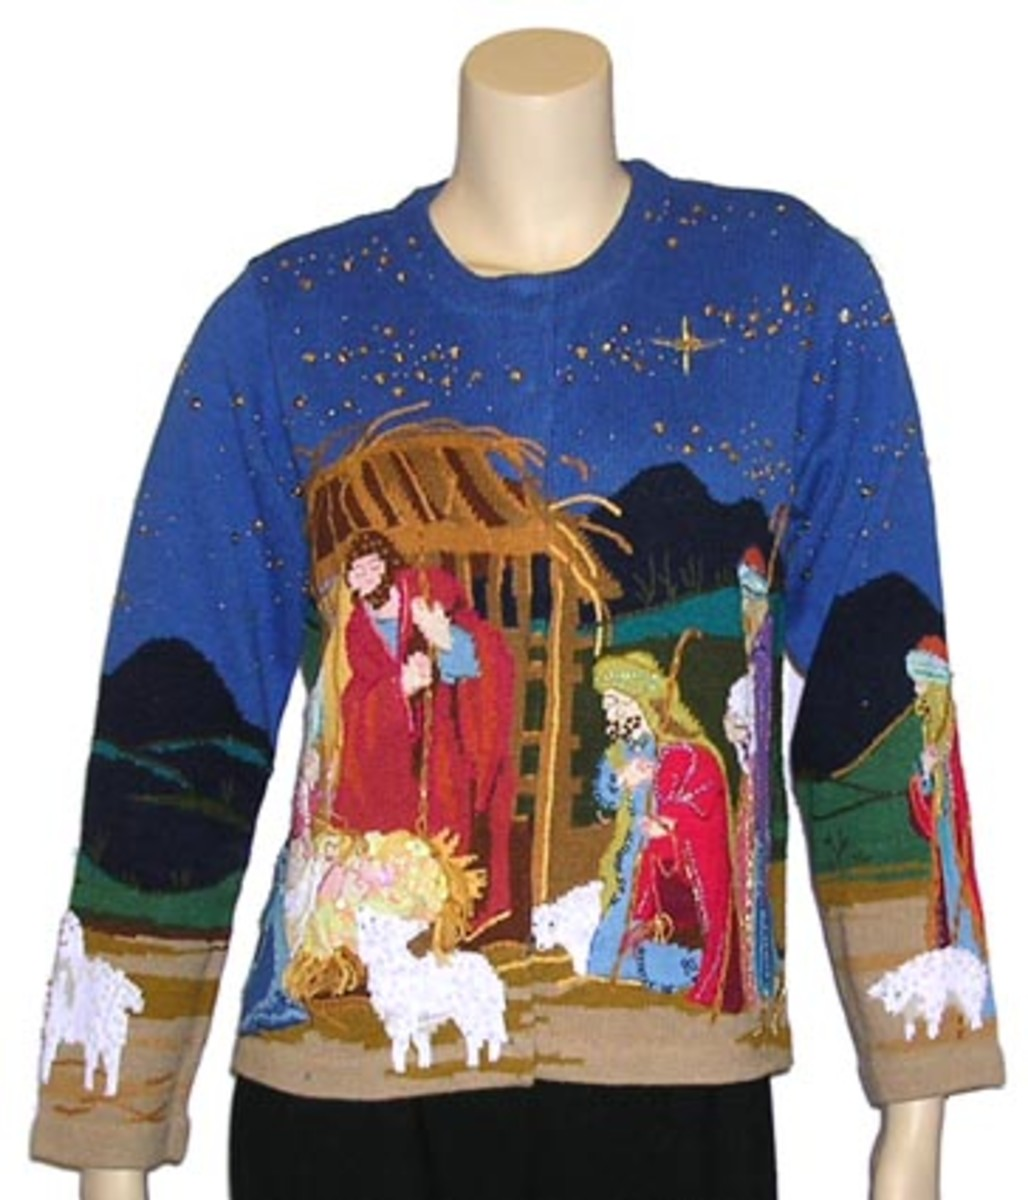 Fabulous Christmas Sweater with lots of bright colours!